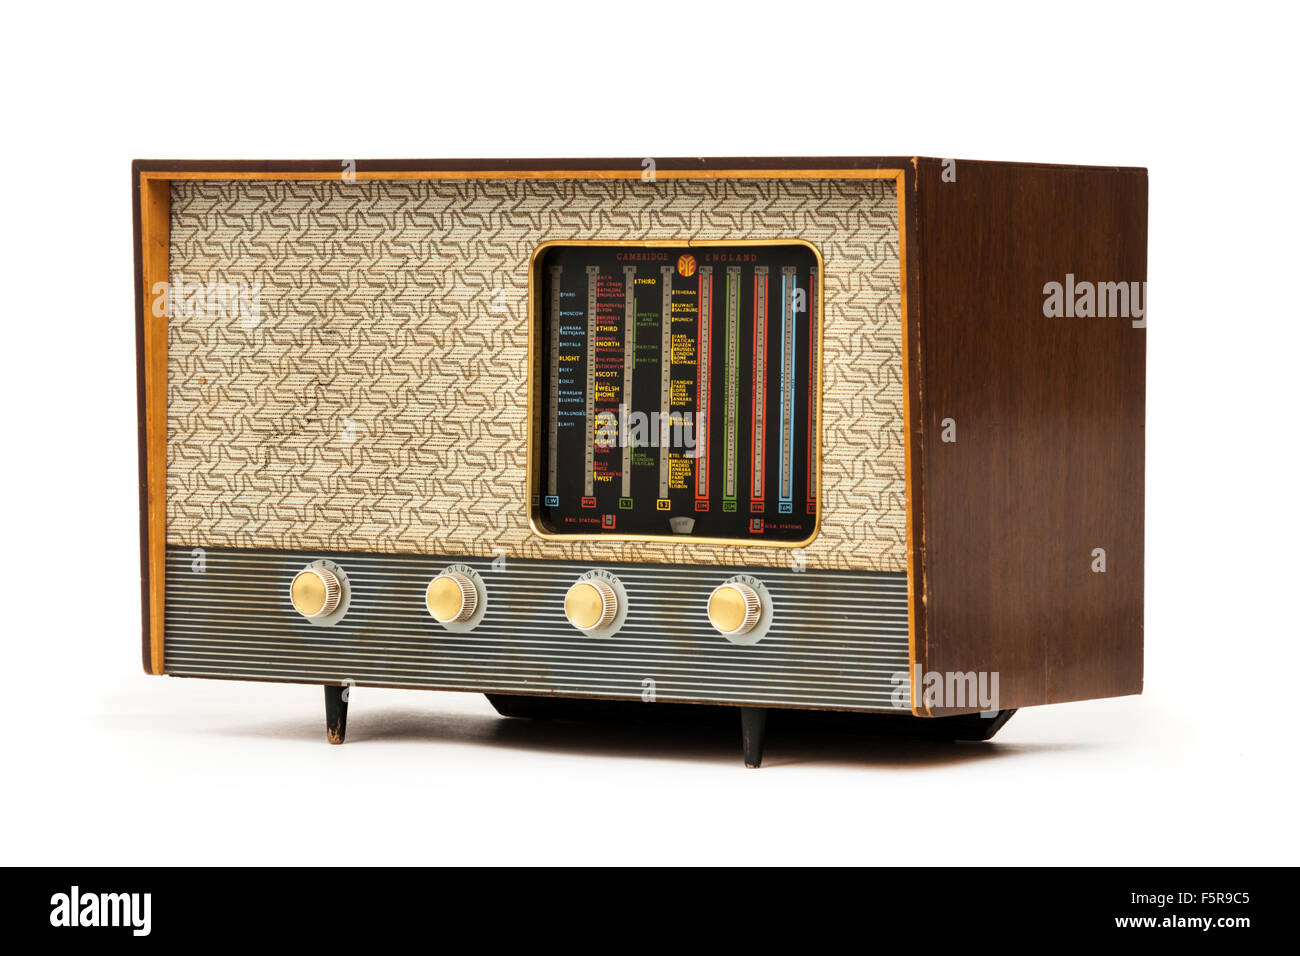 Pye P445U valve radio from the 1950's, made in Cambridge, England - Stock Image